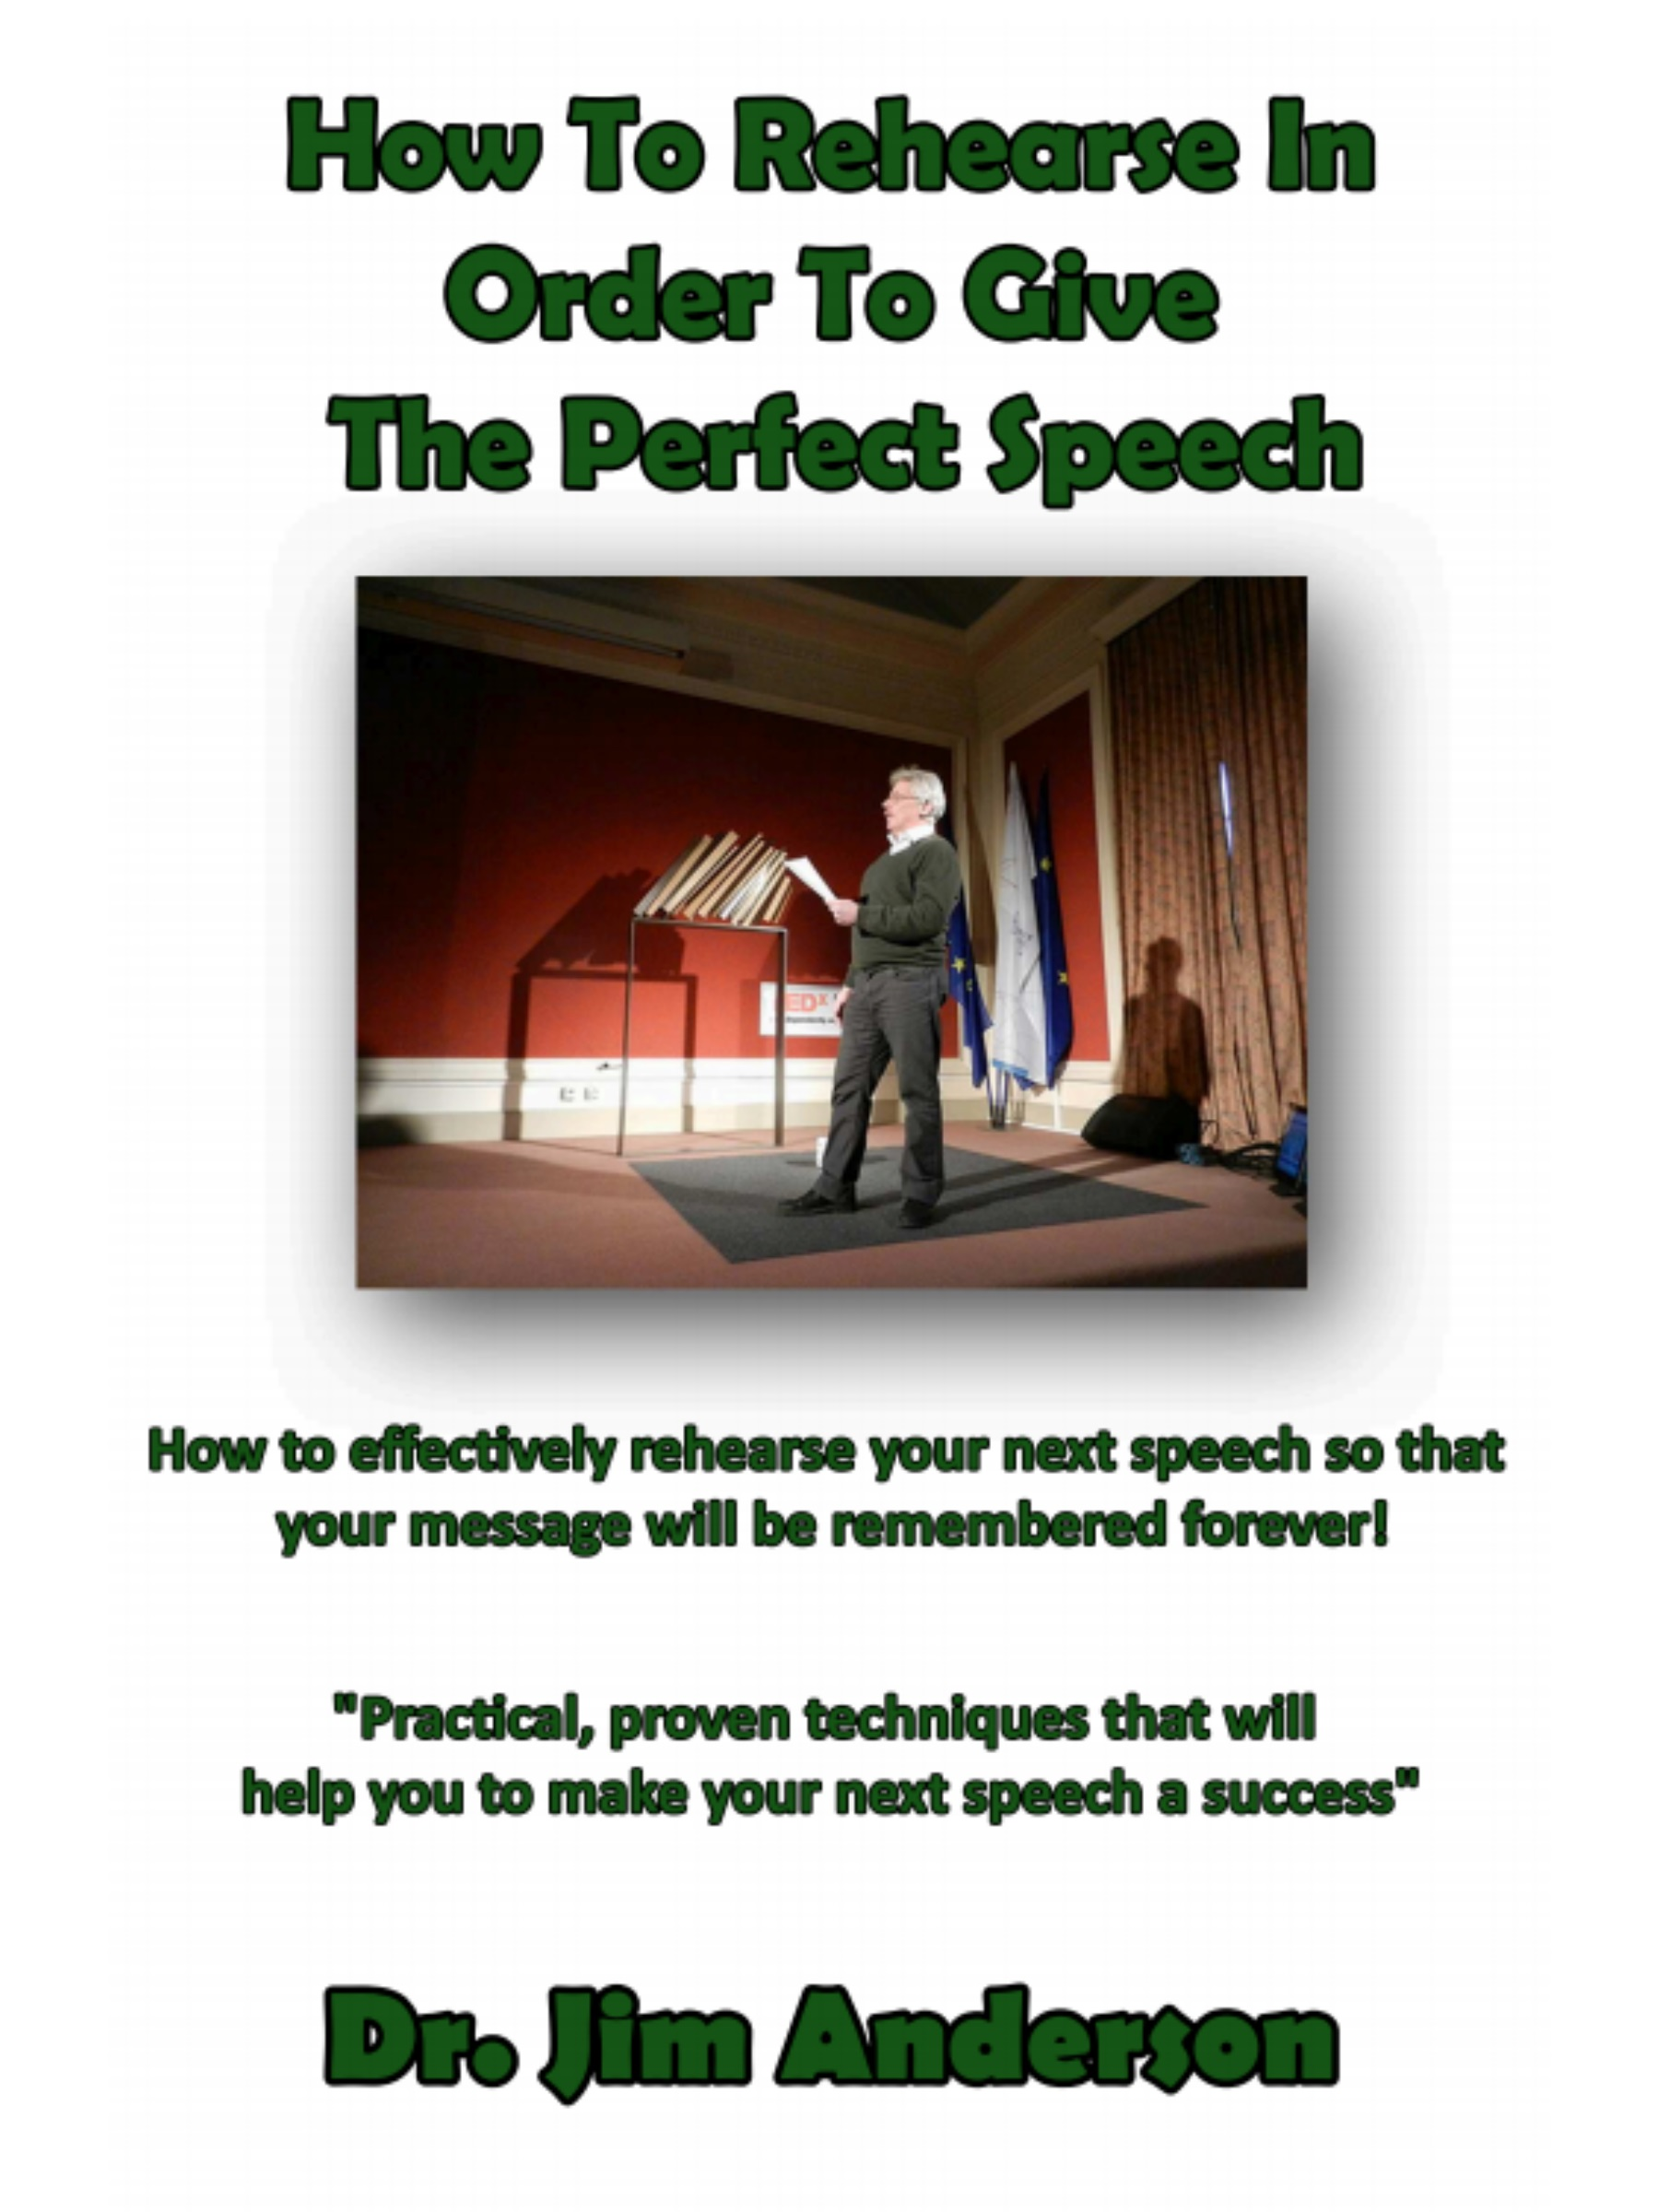 how to write the perfect speech Write out your final draft once you have all the content ready, get it in its final form this is where you may want to start employing tactics for delivery write in your pauses though the speech should not be directly read from, rehearsing from it with pauses written in will help you remember when you are actually delivering it write in.